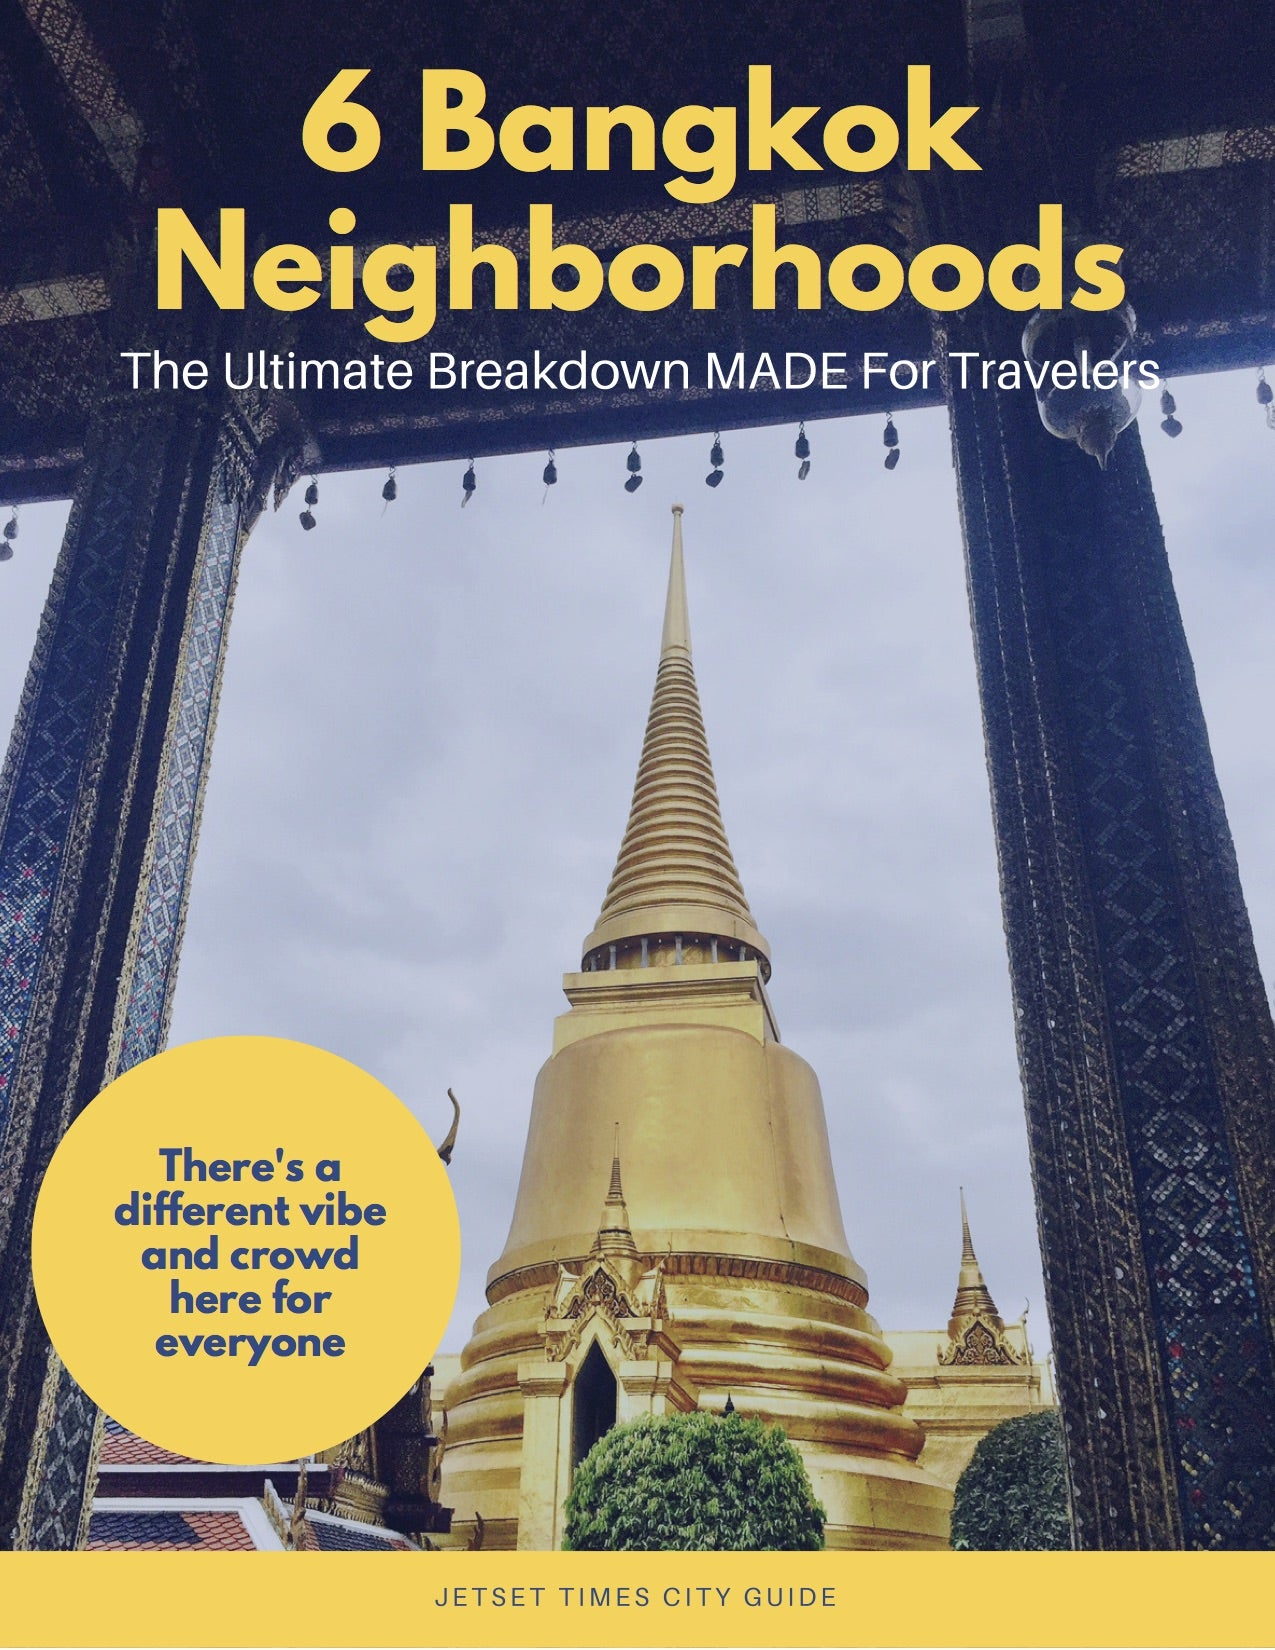 Bangkok city guide ebook pdf download jetset times shop bangkok neighborhoods city guide chapter for offline pdf download use by jetset times shop fandeluxe Image collections